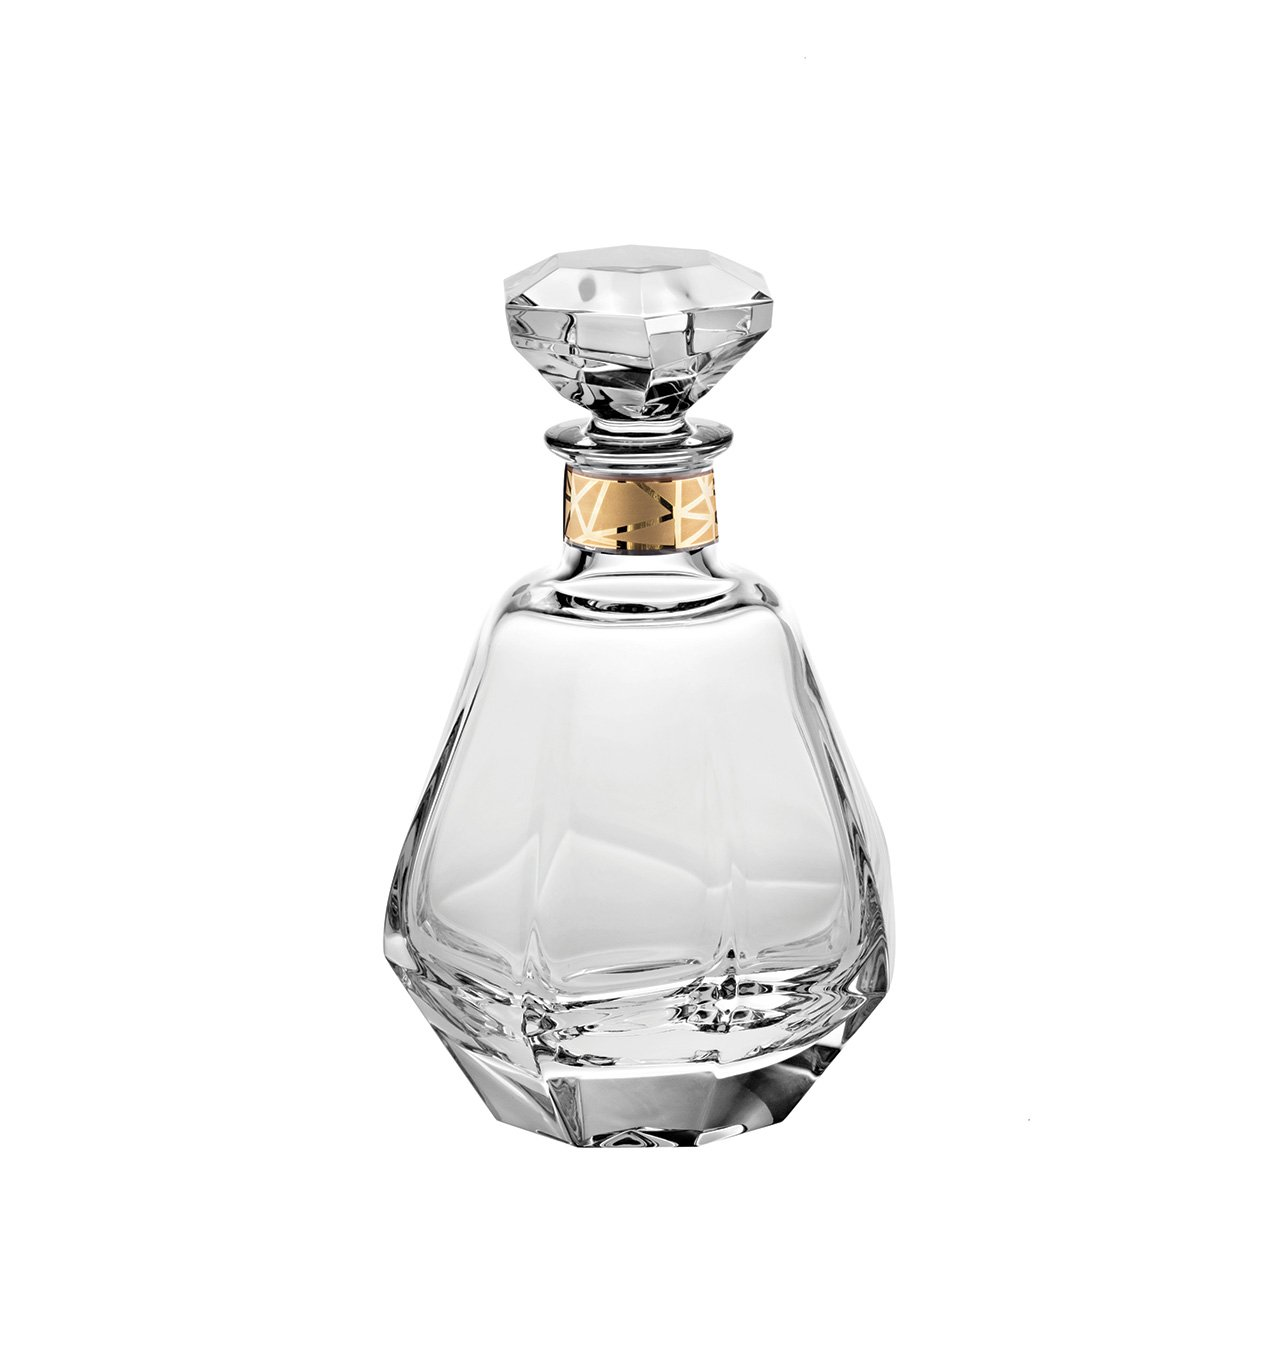 VISTA ALEGRE - Gemstone - Whisky Decanter (Ref # 48001430) Handmade Crystal by VISTA ALEGRE - Gemstone - Whisky Decanter (Ref # 48001430) Handmade Crystal